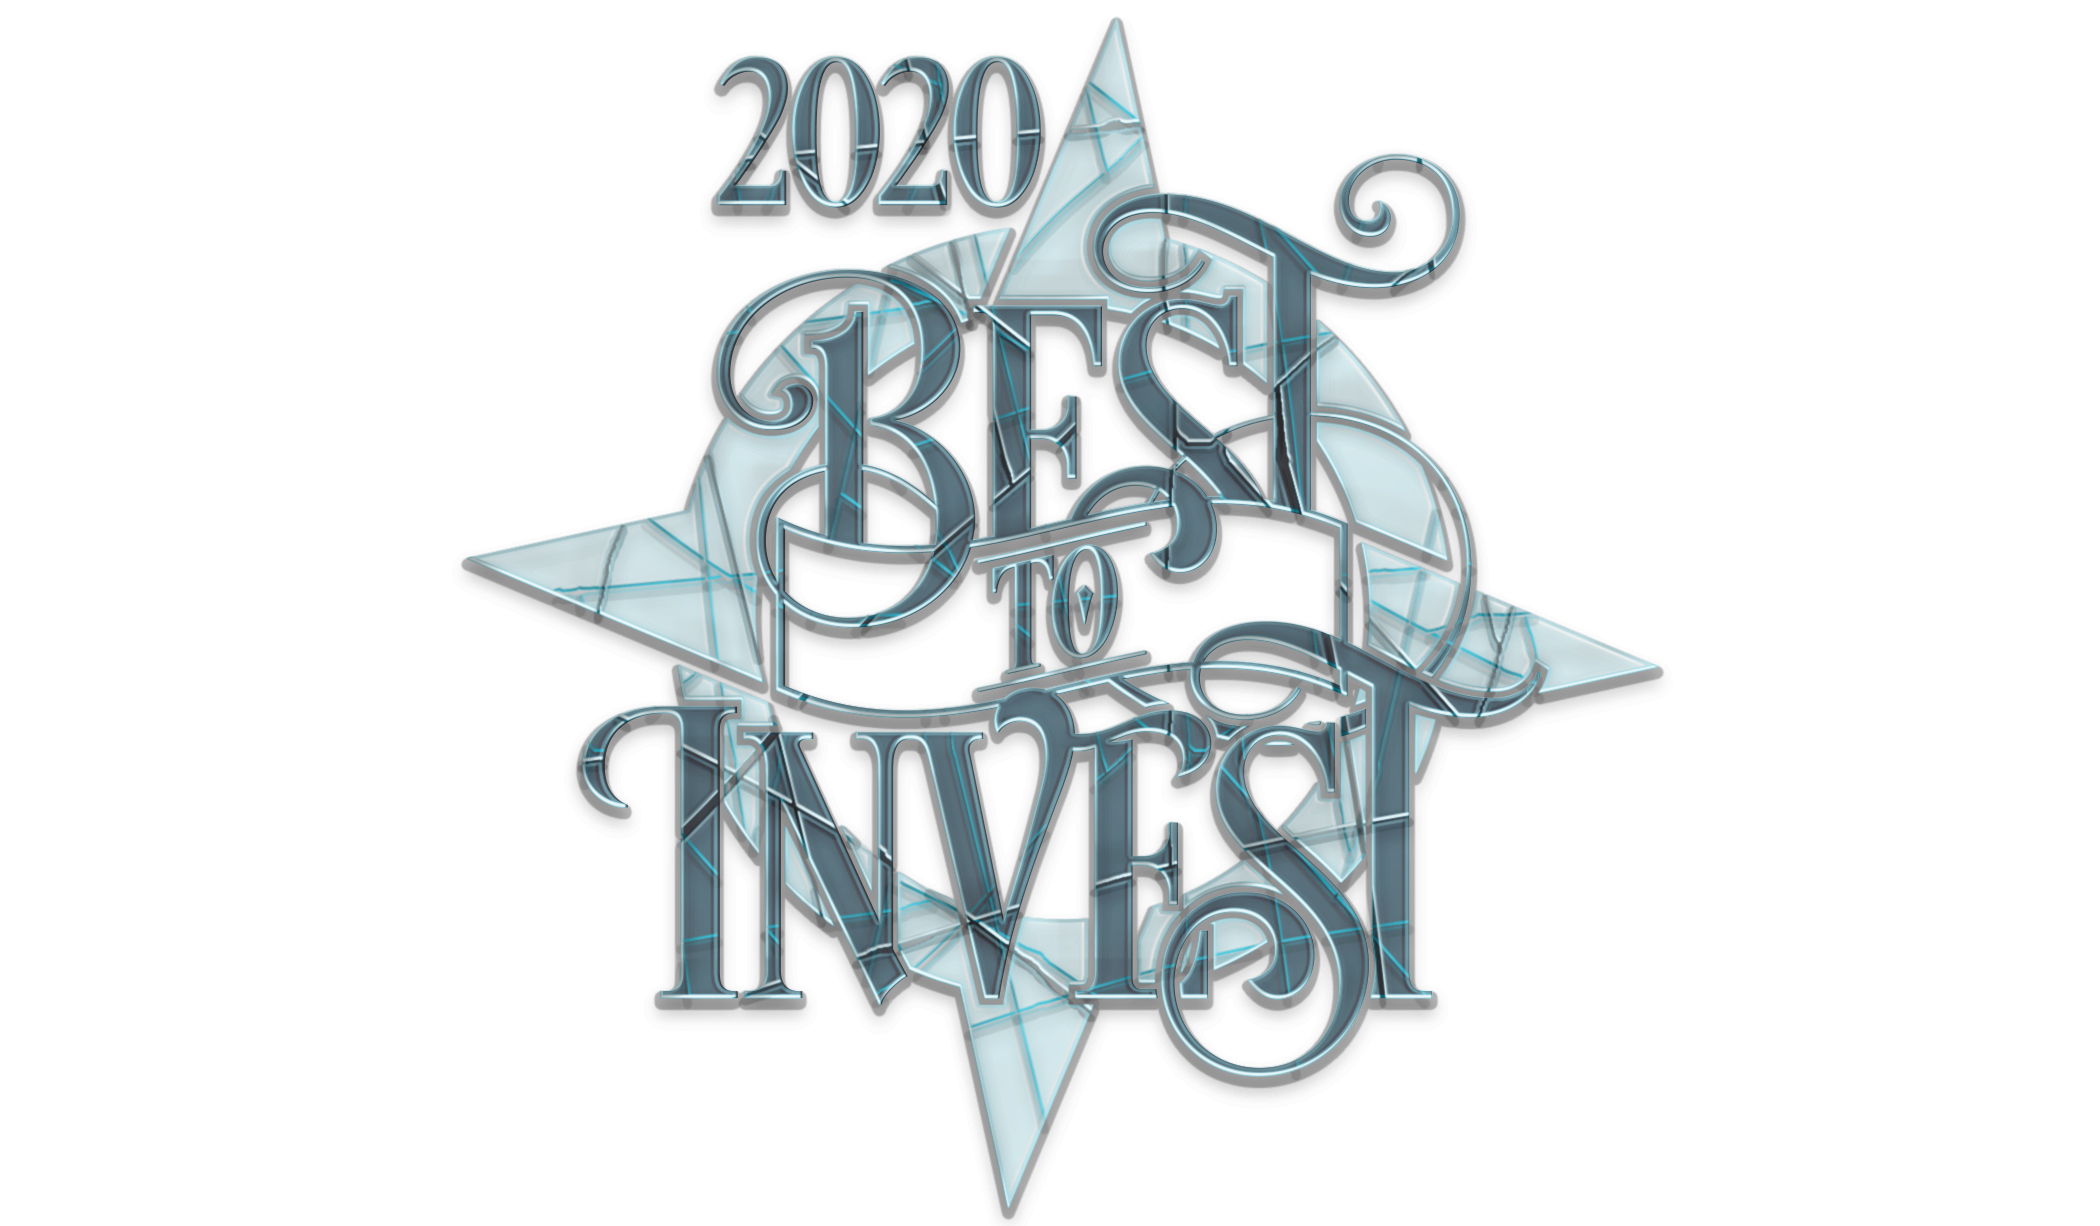 B2I: 2020 GLOBAL BEST TO INVEST